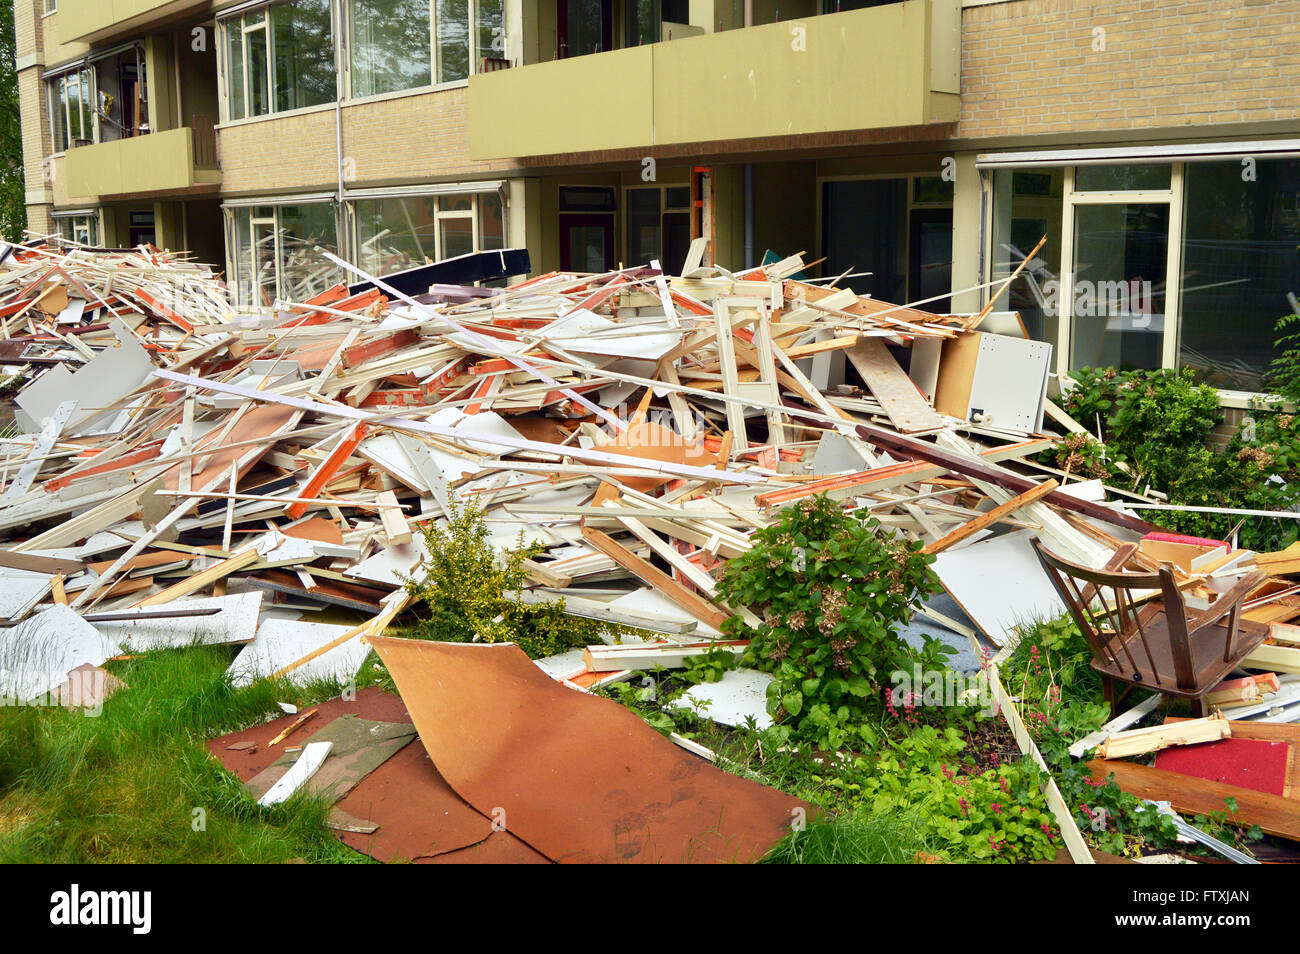 Demolition. Door and window frames stack of a deconstructed building - Stock Image